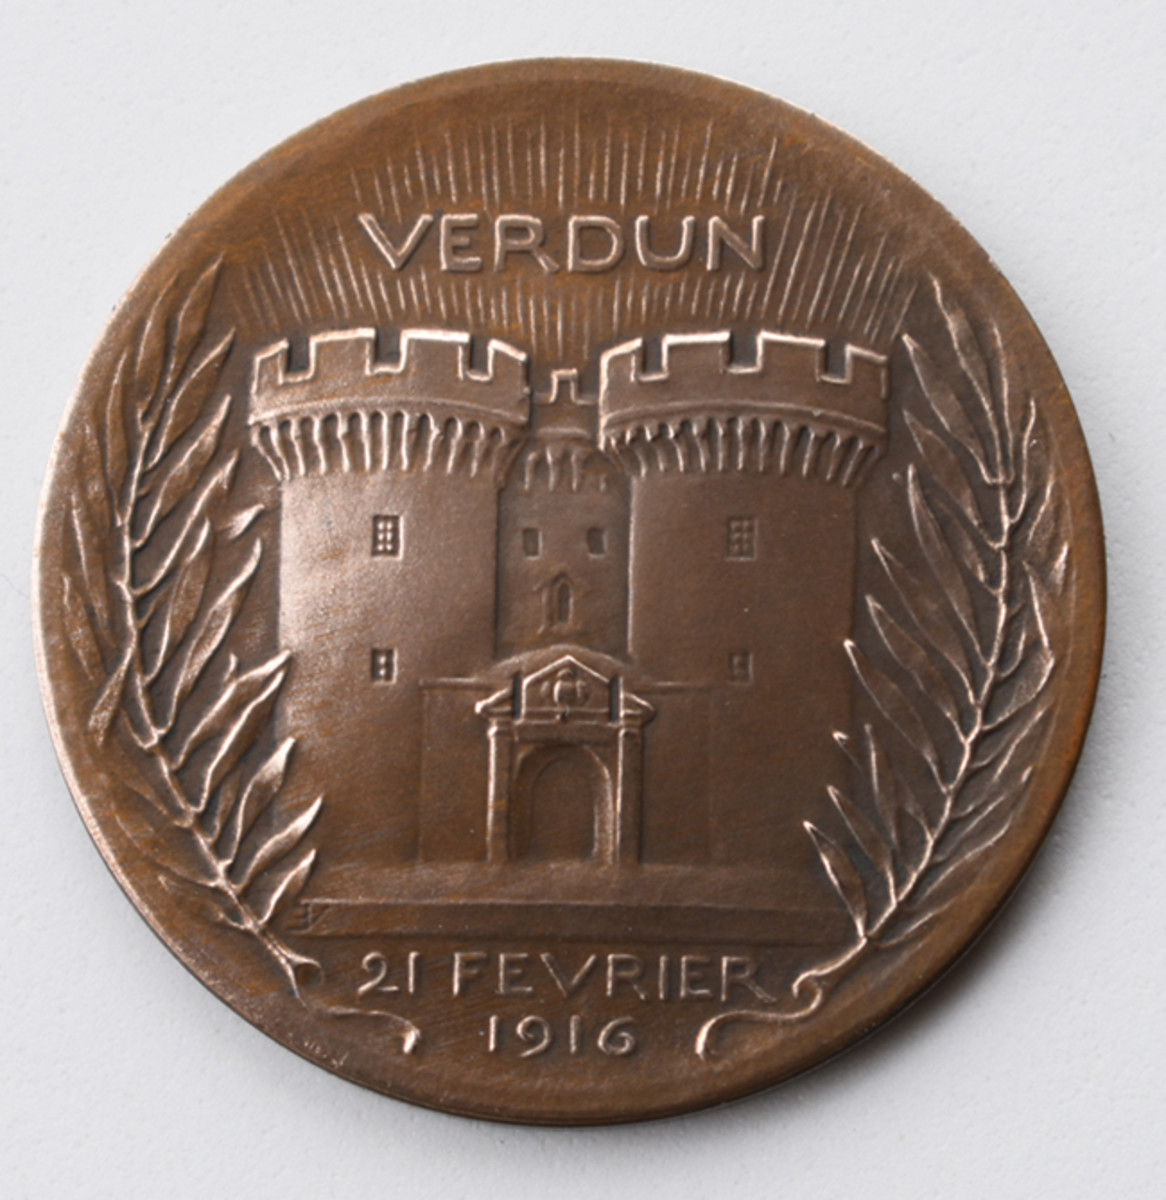 The reverse of the Vernier Medal shows the Verdun town gate with two fortified towers.